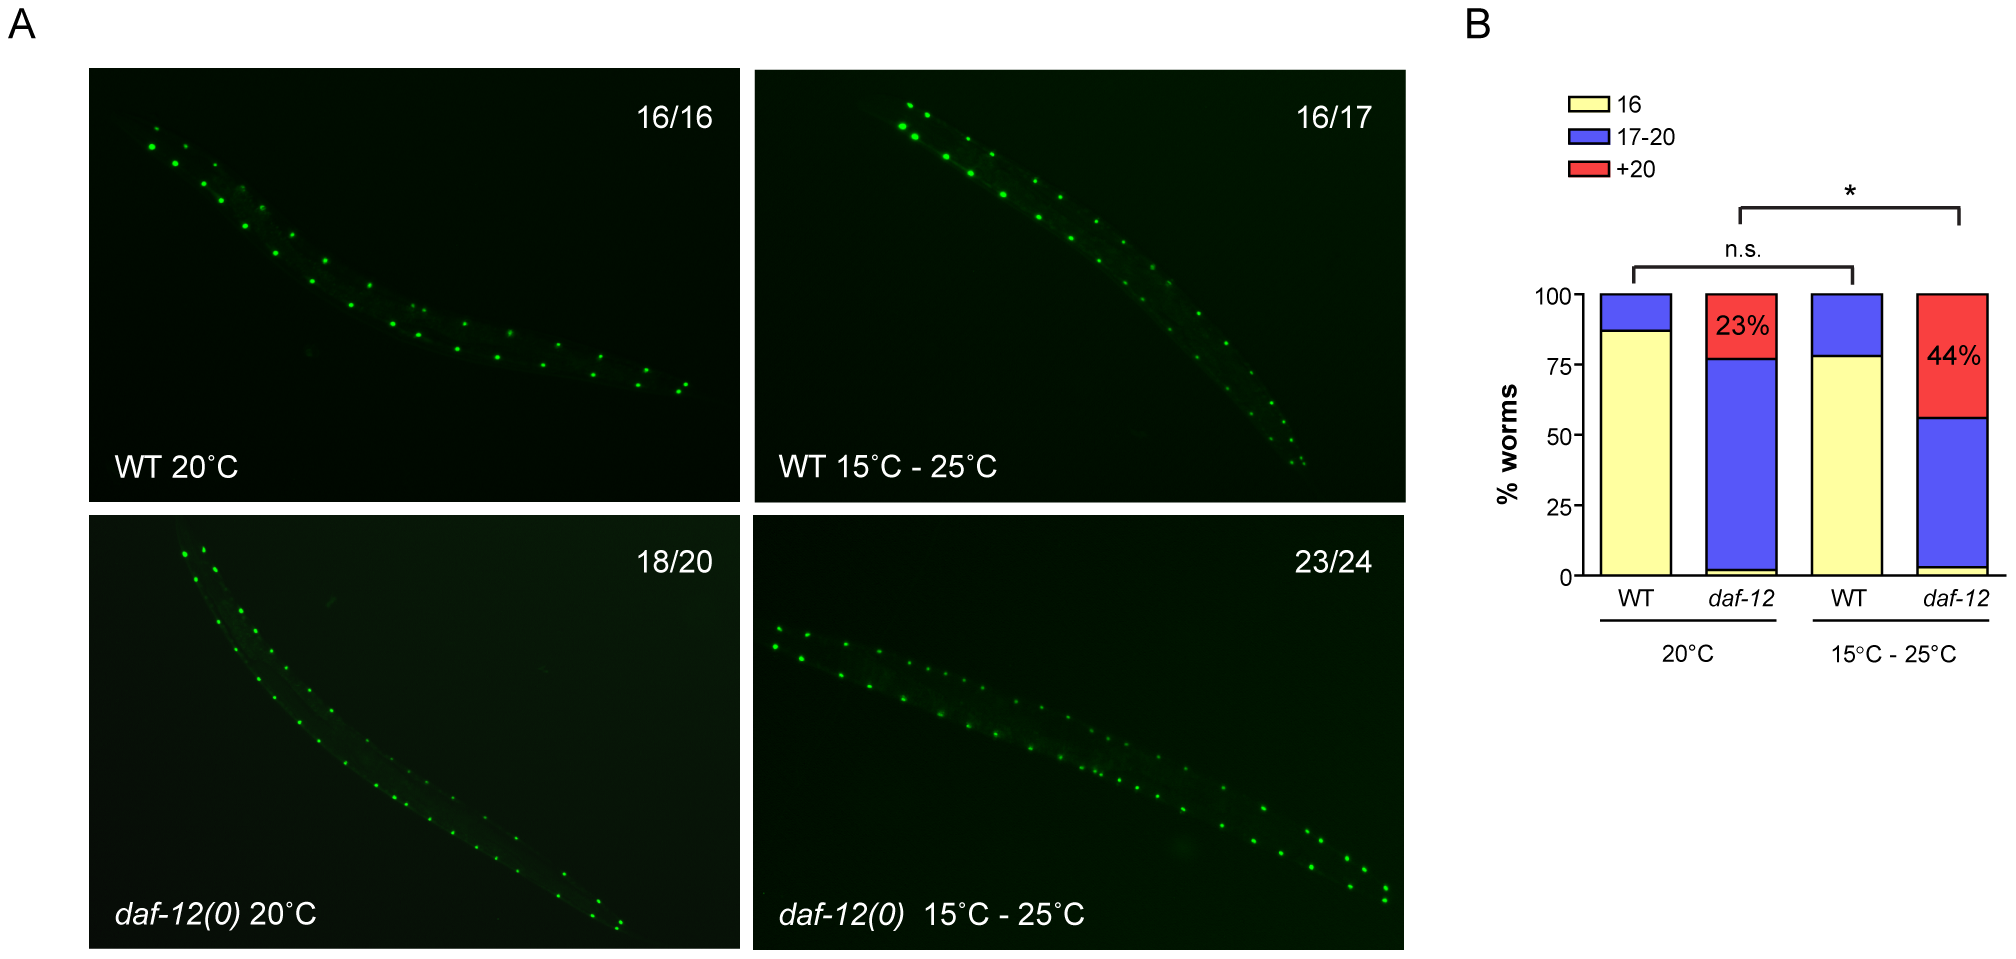 DAF-12 acts as a phenotypic capacitor in worms.